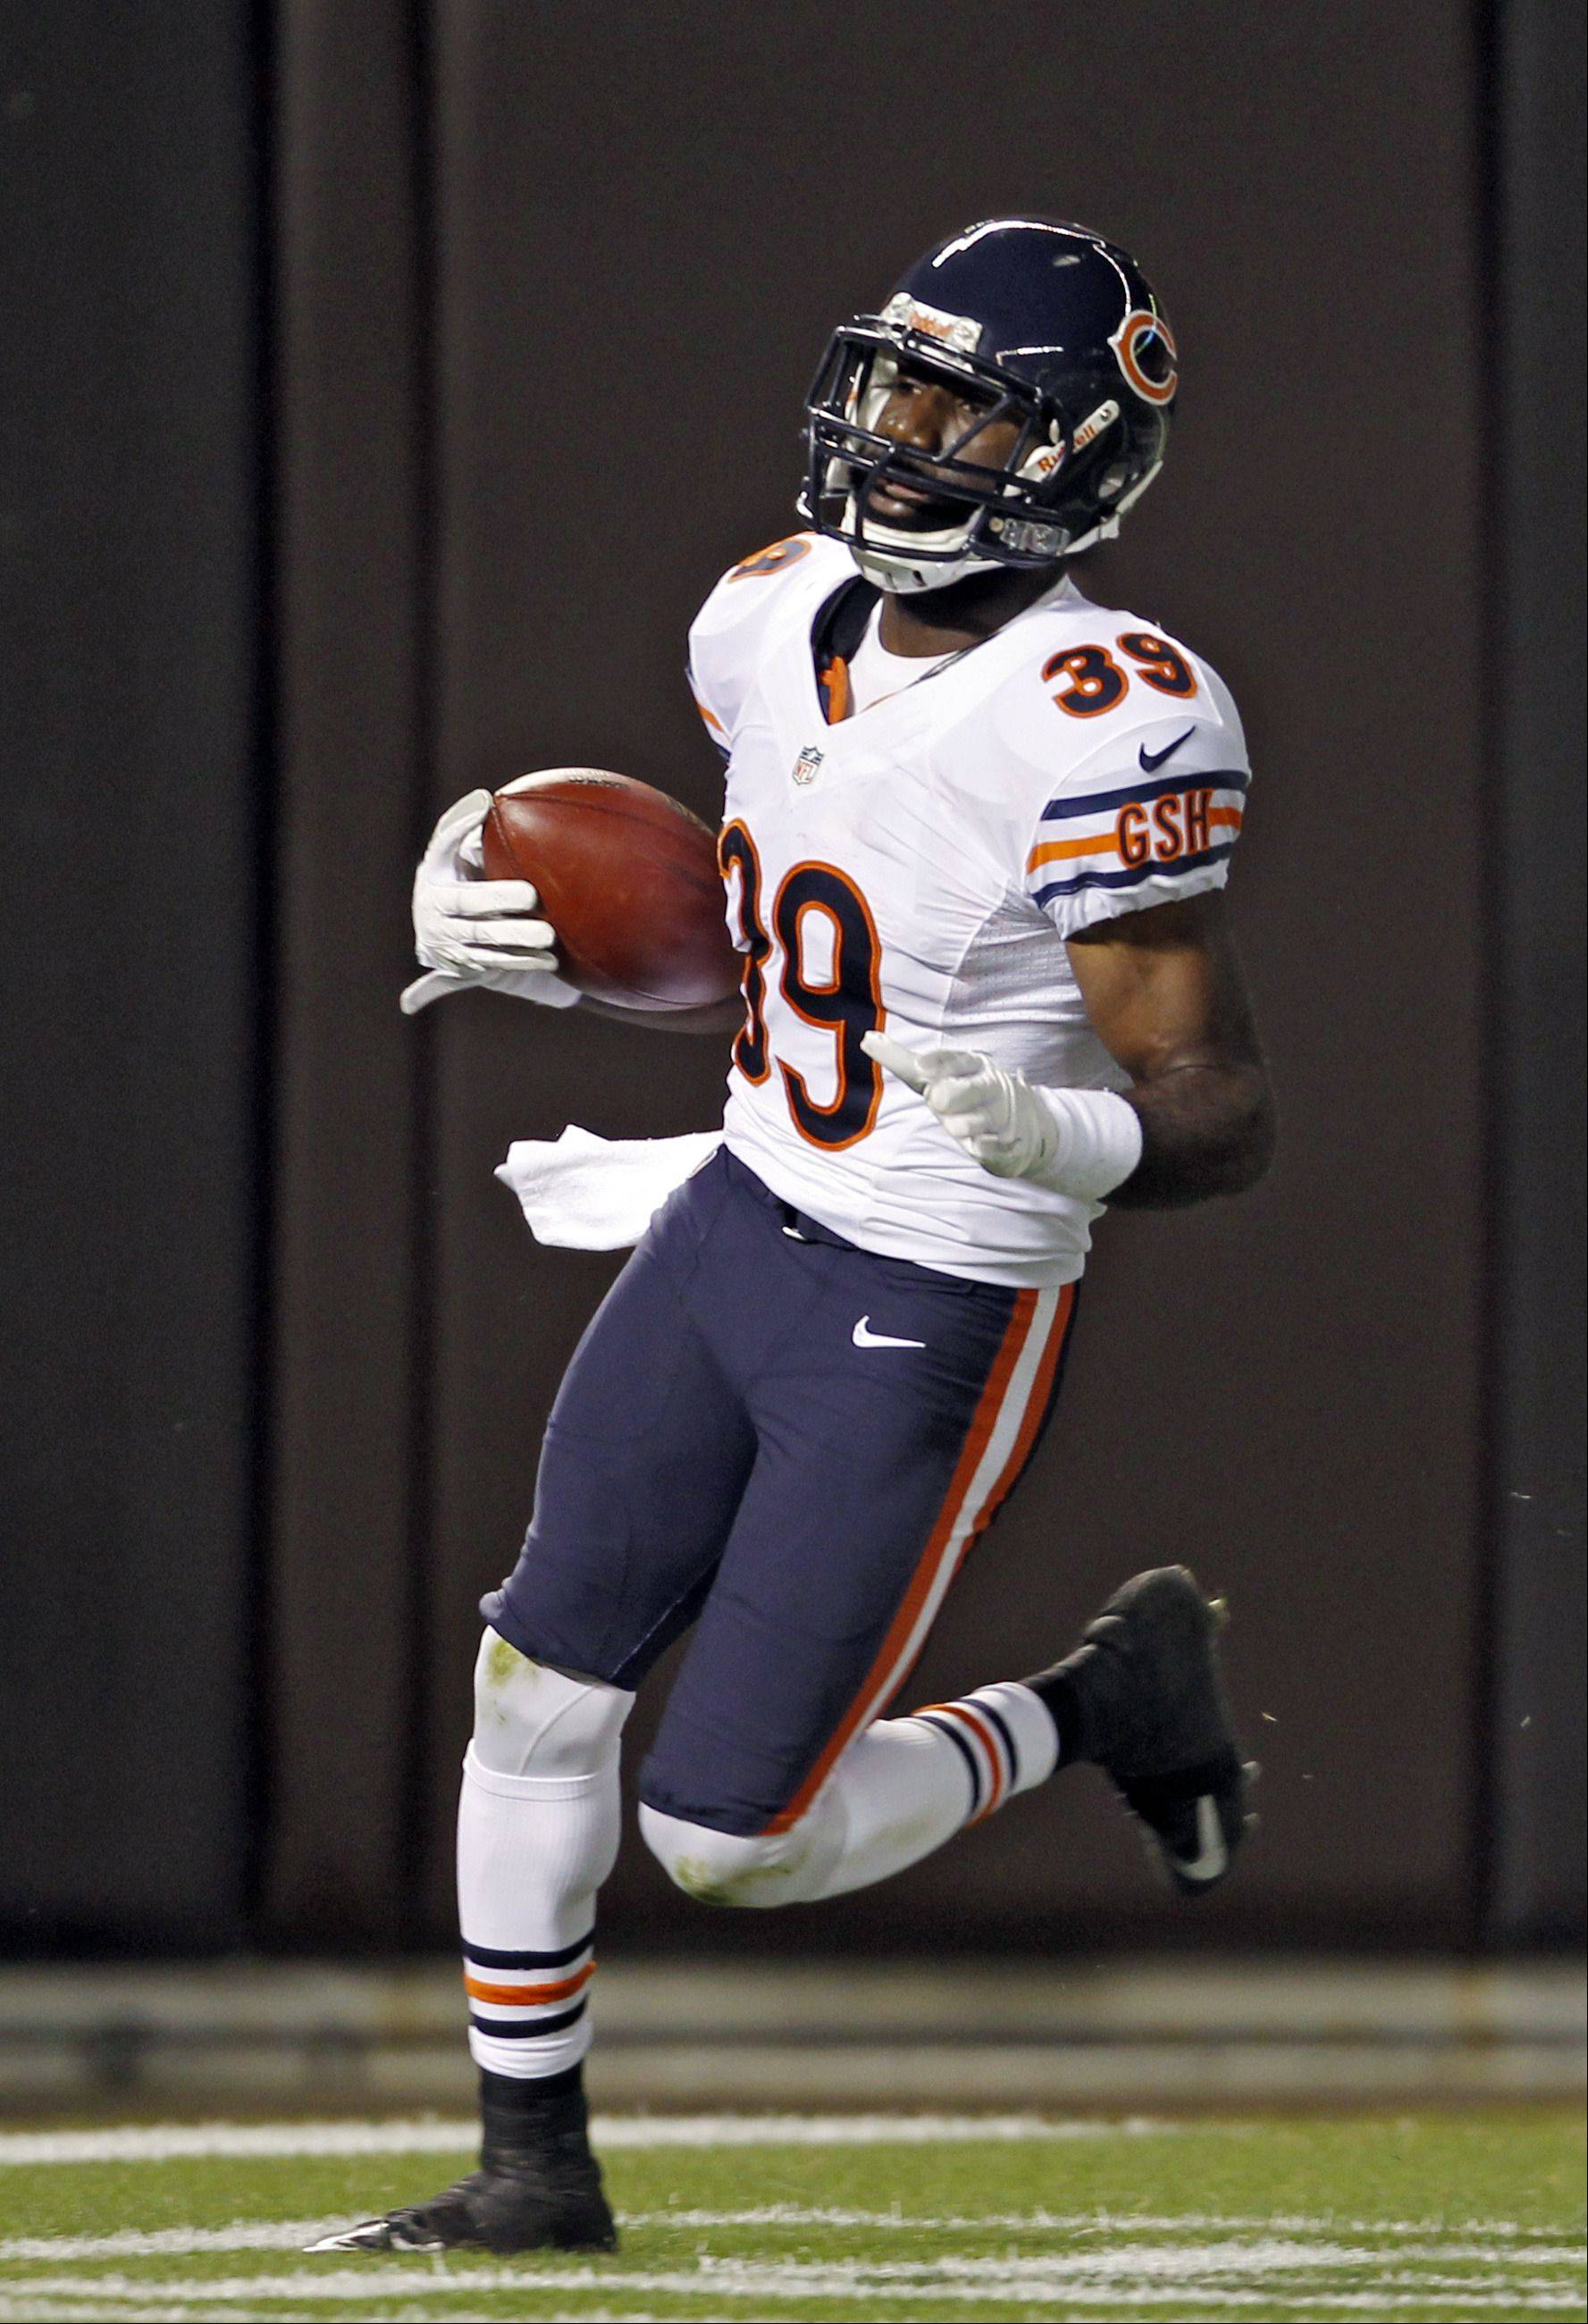 Chicago Bears cornerback Greg McCoy runs into the end zone with an interception in the third quarter of a preseason NFL football game against the Cleveland Browns Thursday, Aug. 30, 2012, in Cleveland. Originally ruled an incomplete pass, the call res reversed after a challenge.